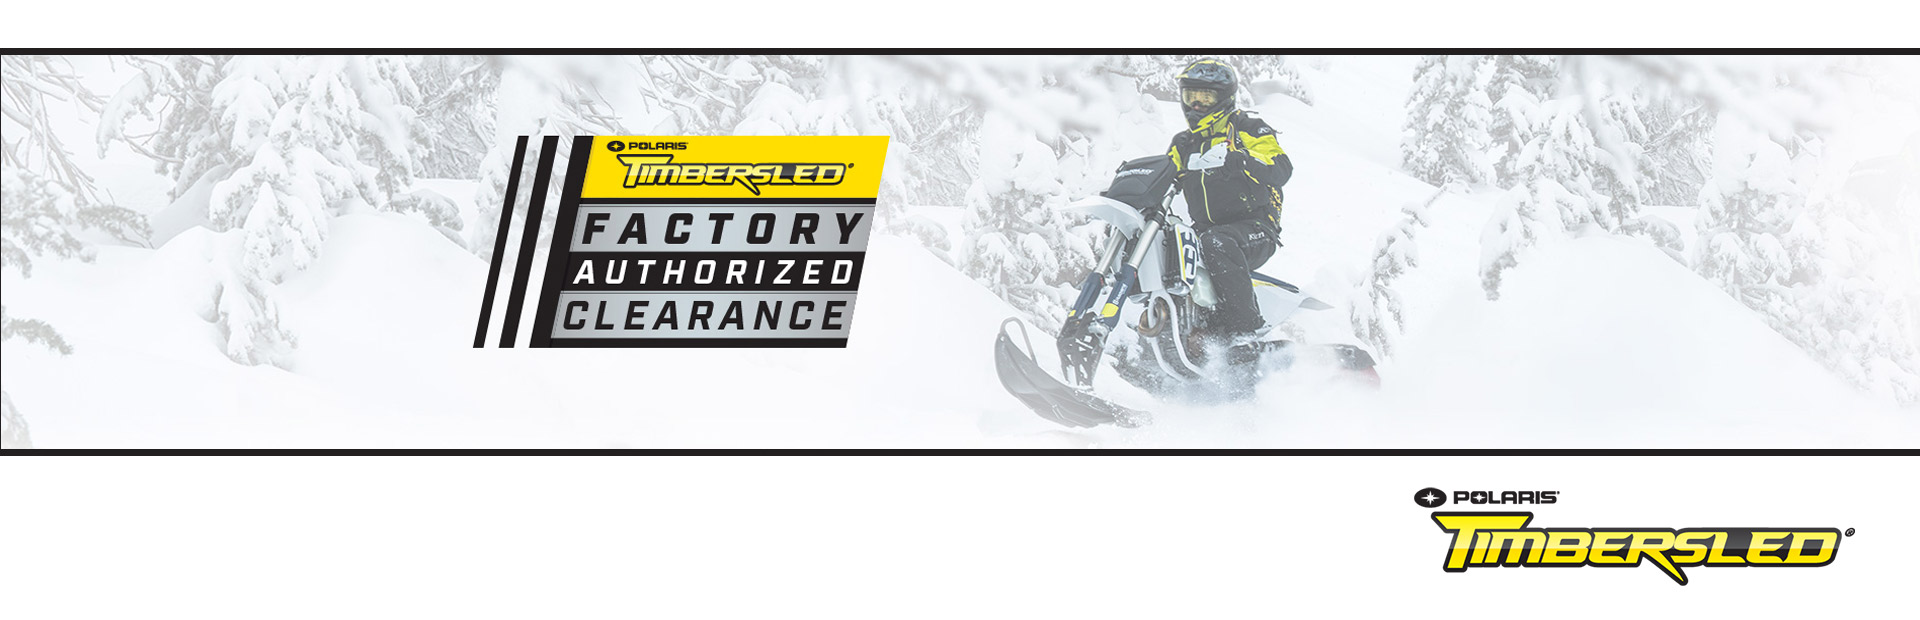 Timbersled: Timbersled Factory Authorized Clearance